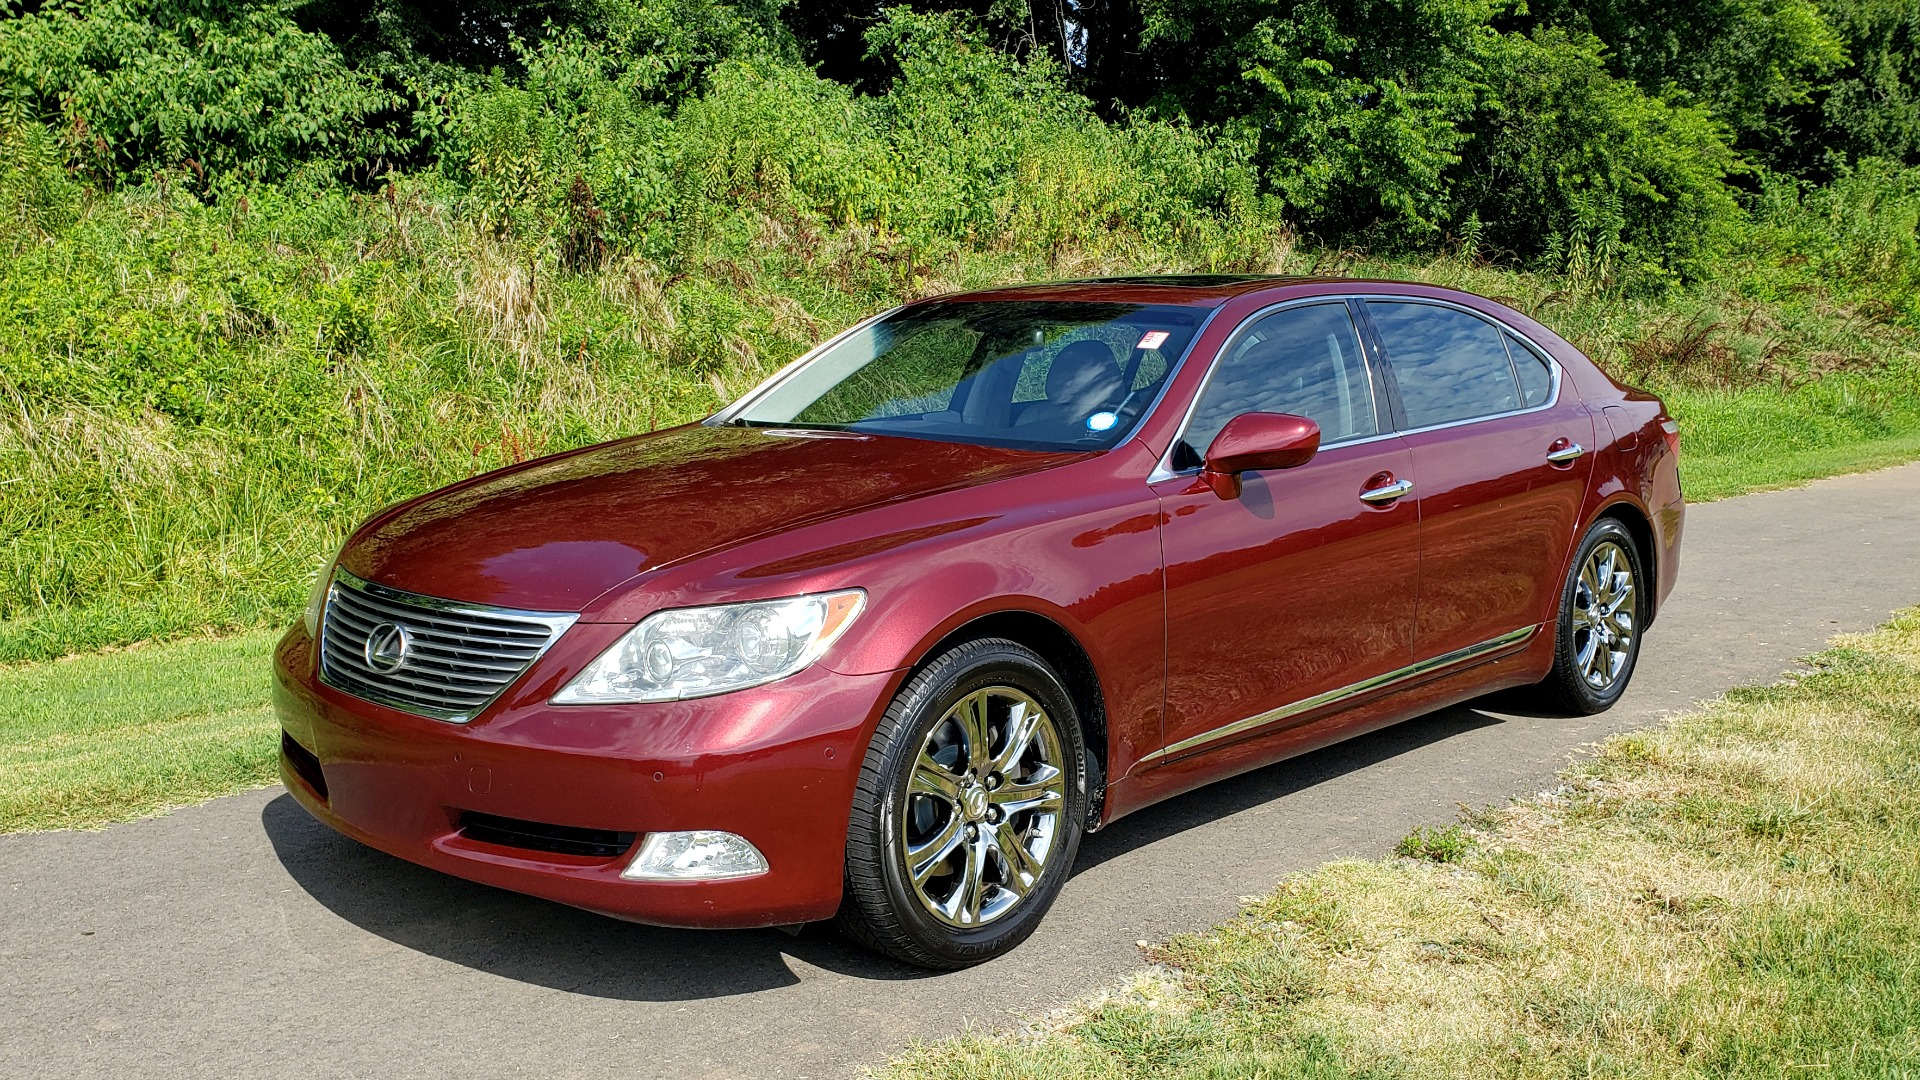 Used 2007 Lexus LS 460 LWB / LUX / NAV / SUNROOF / MARK LEVINSON SND / AIR SUSP for sale Sold at Formula Imports in Charlotte NC 28227 1